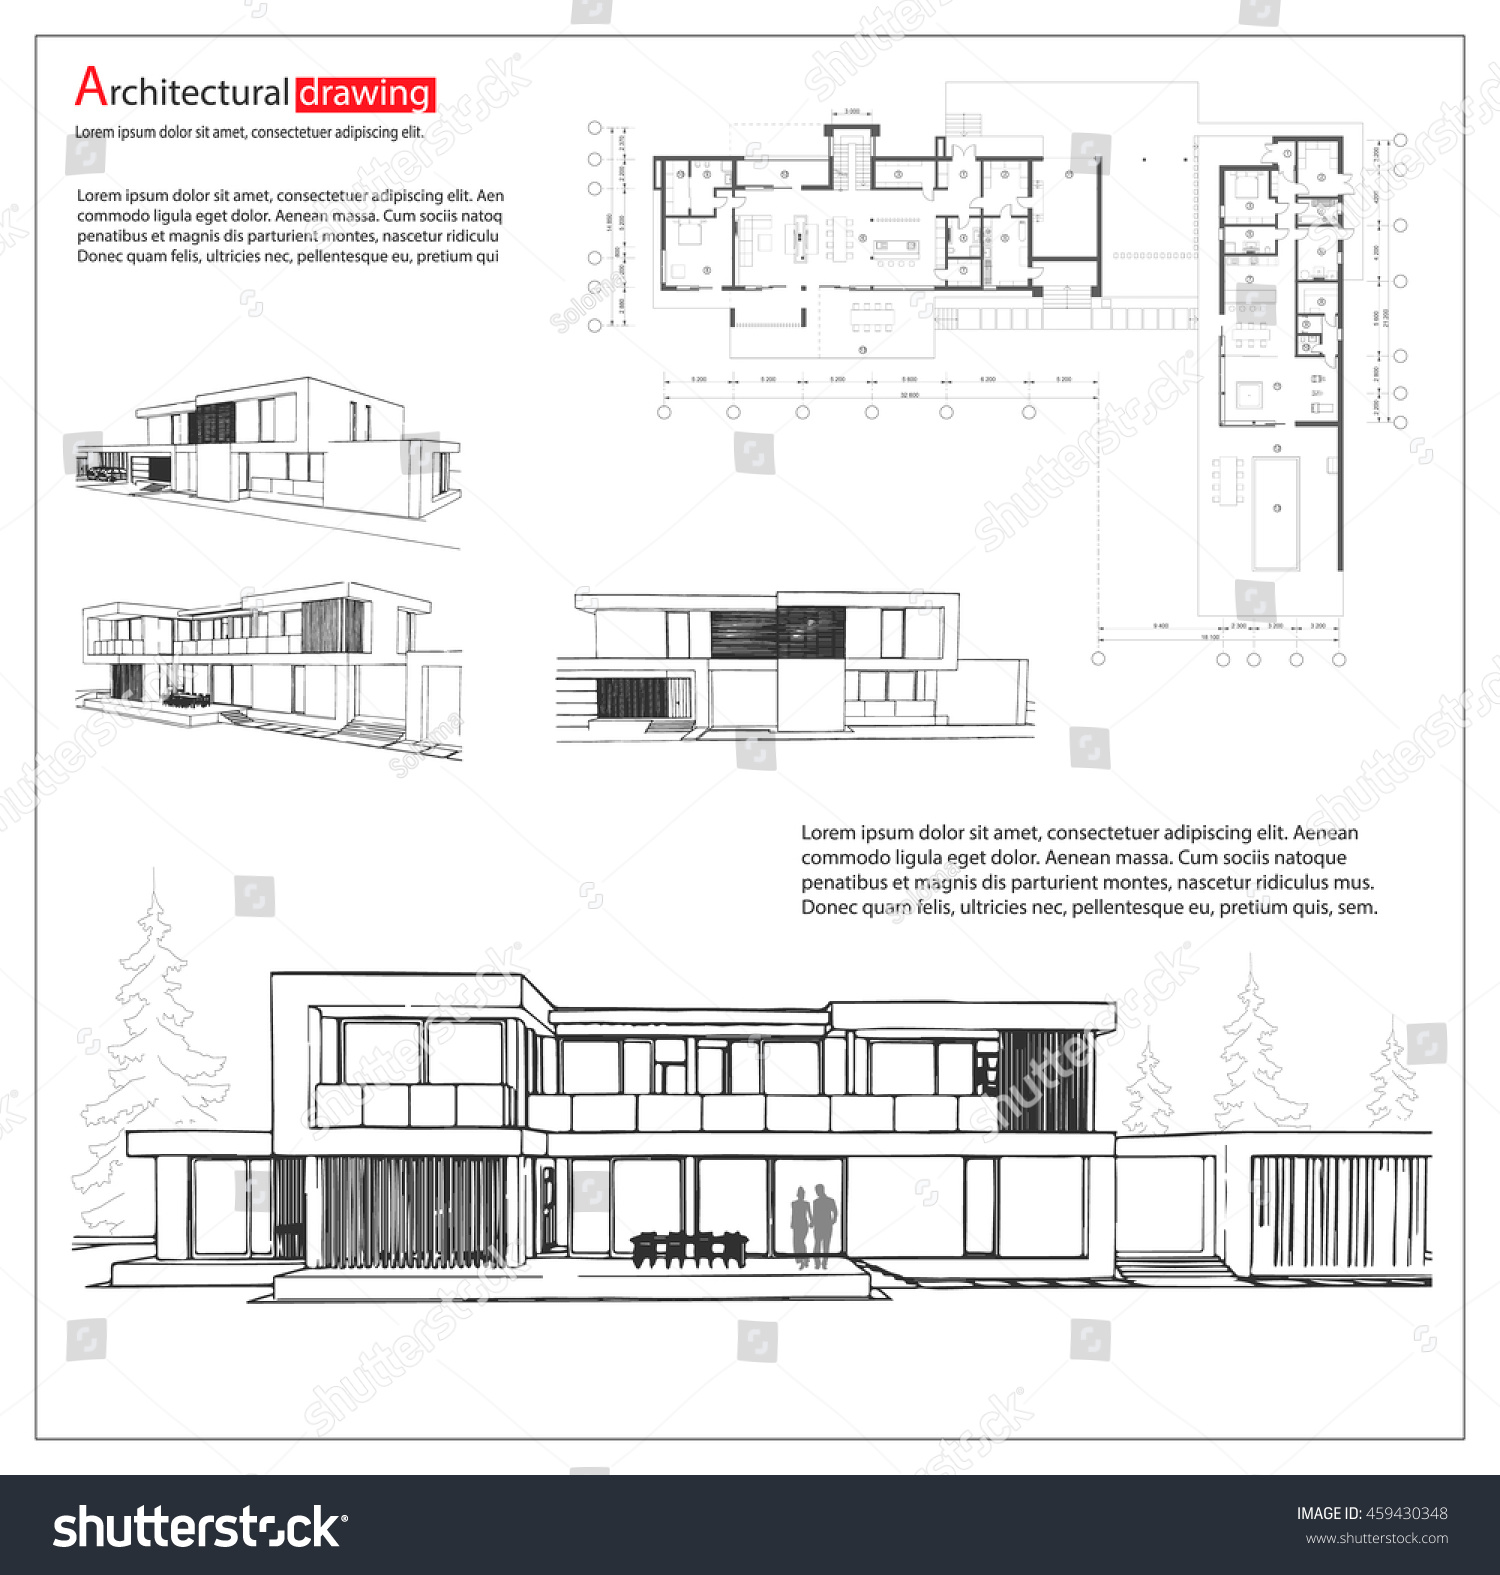 Wireframe blueprint drawing 3d building house stock vector wireframe blueprint drawing of 3d building house vector architectural template background malvernweather Gallery